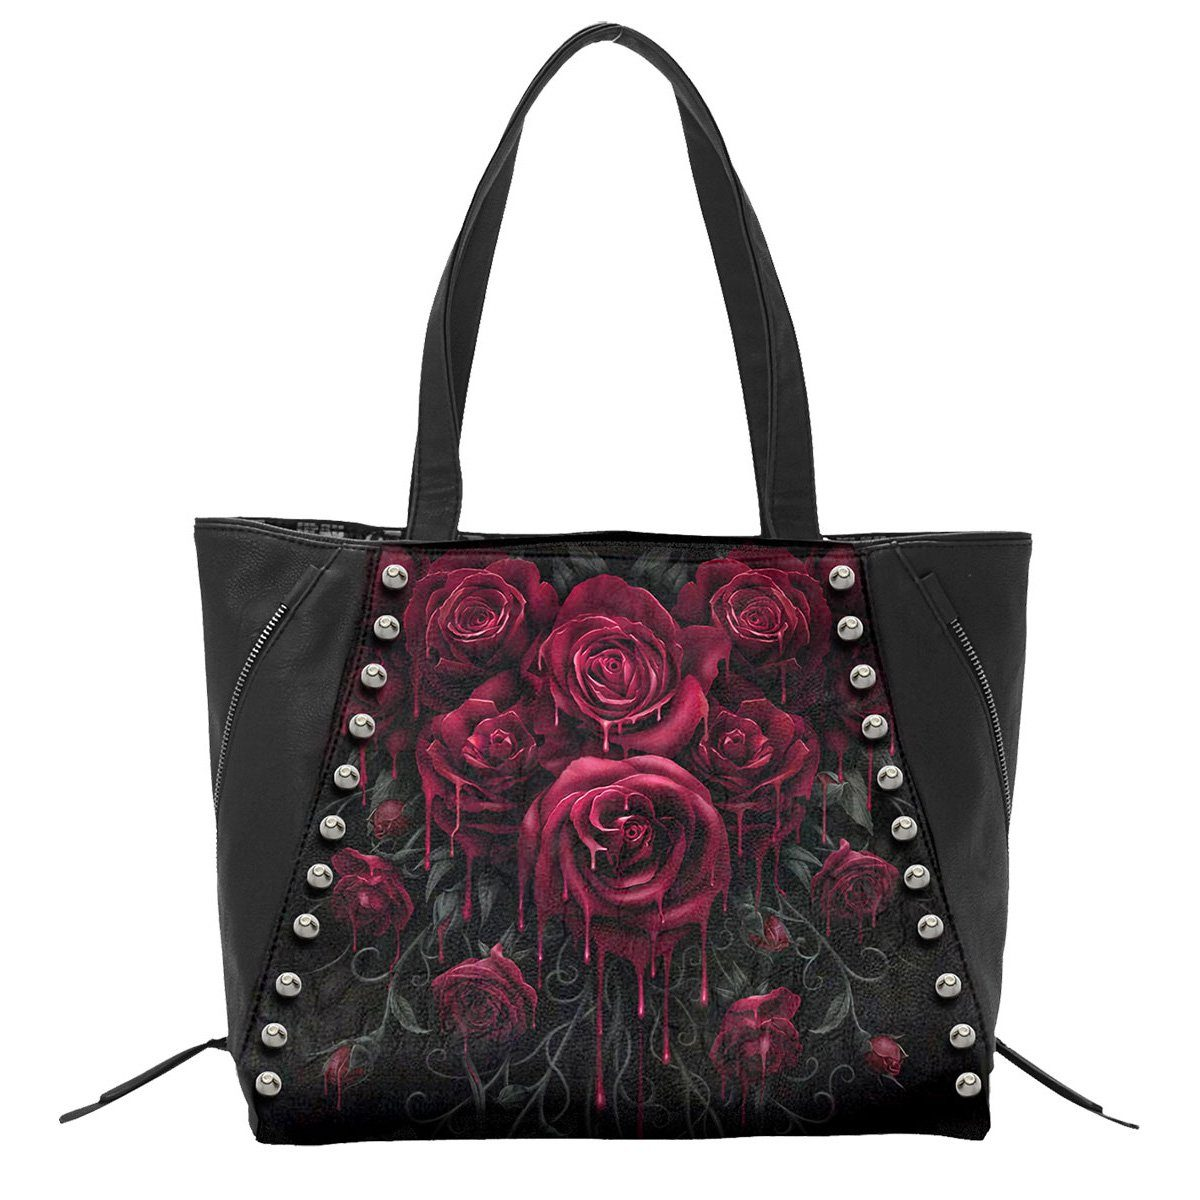 BLOOD ROSE - Tote Bag - Top quality PU Leather Studded - Rebels Depot